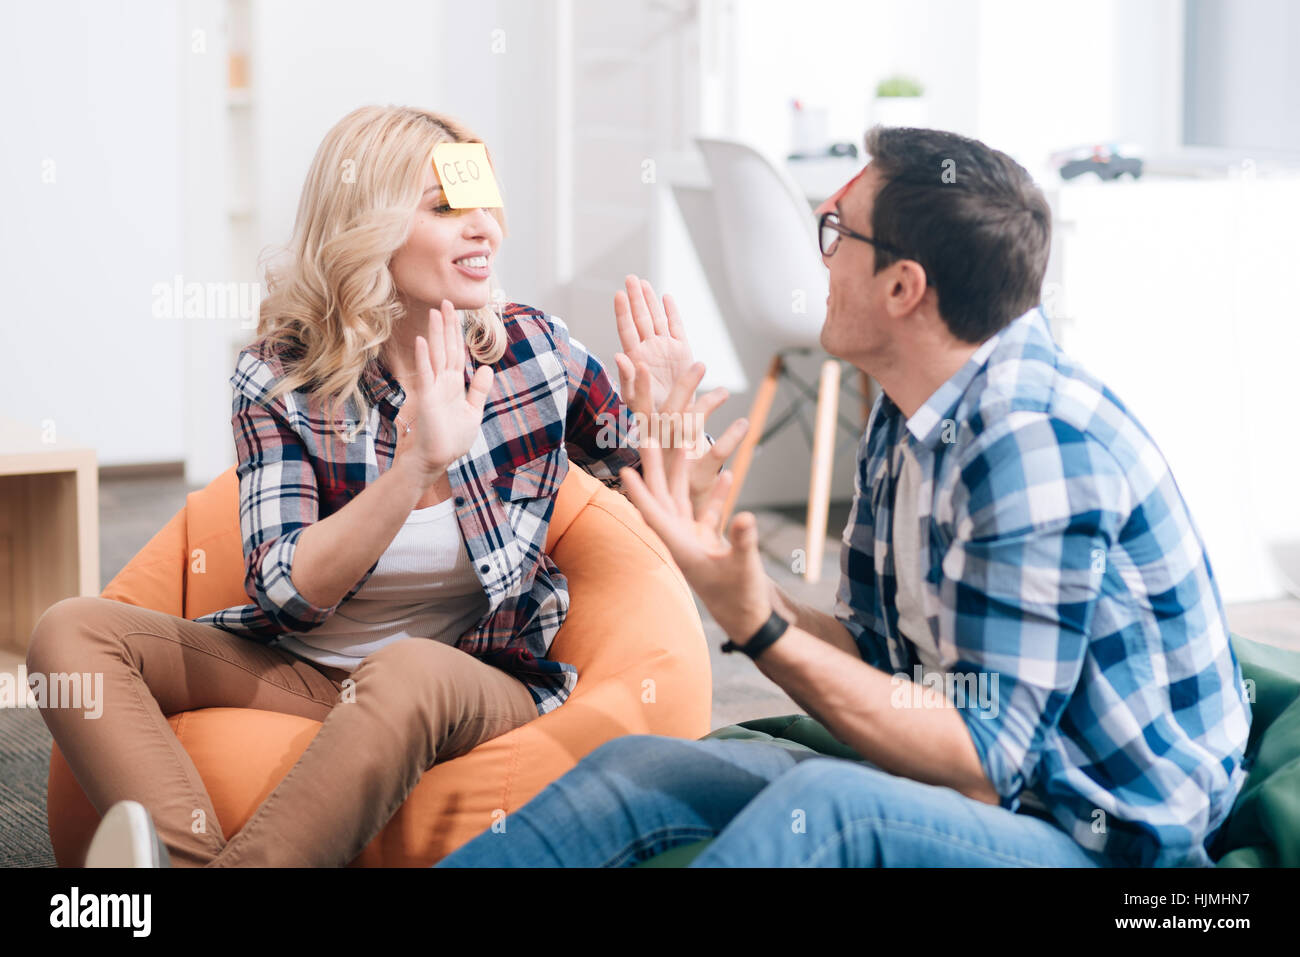 Nice positive people interacting with each other - Stock Image